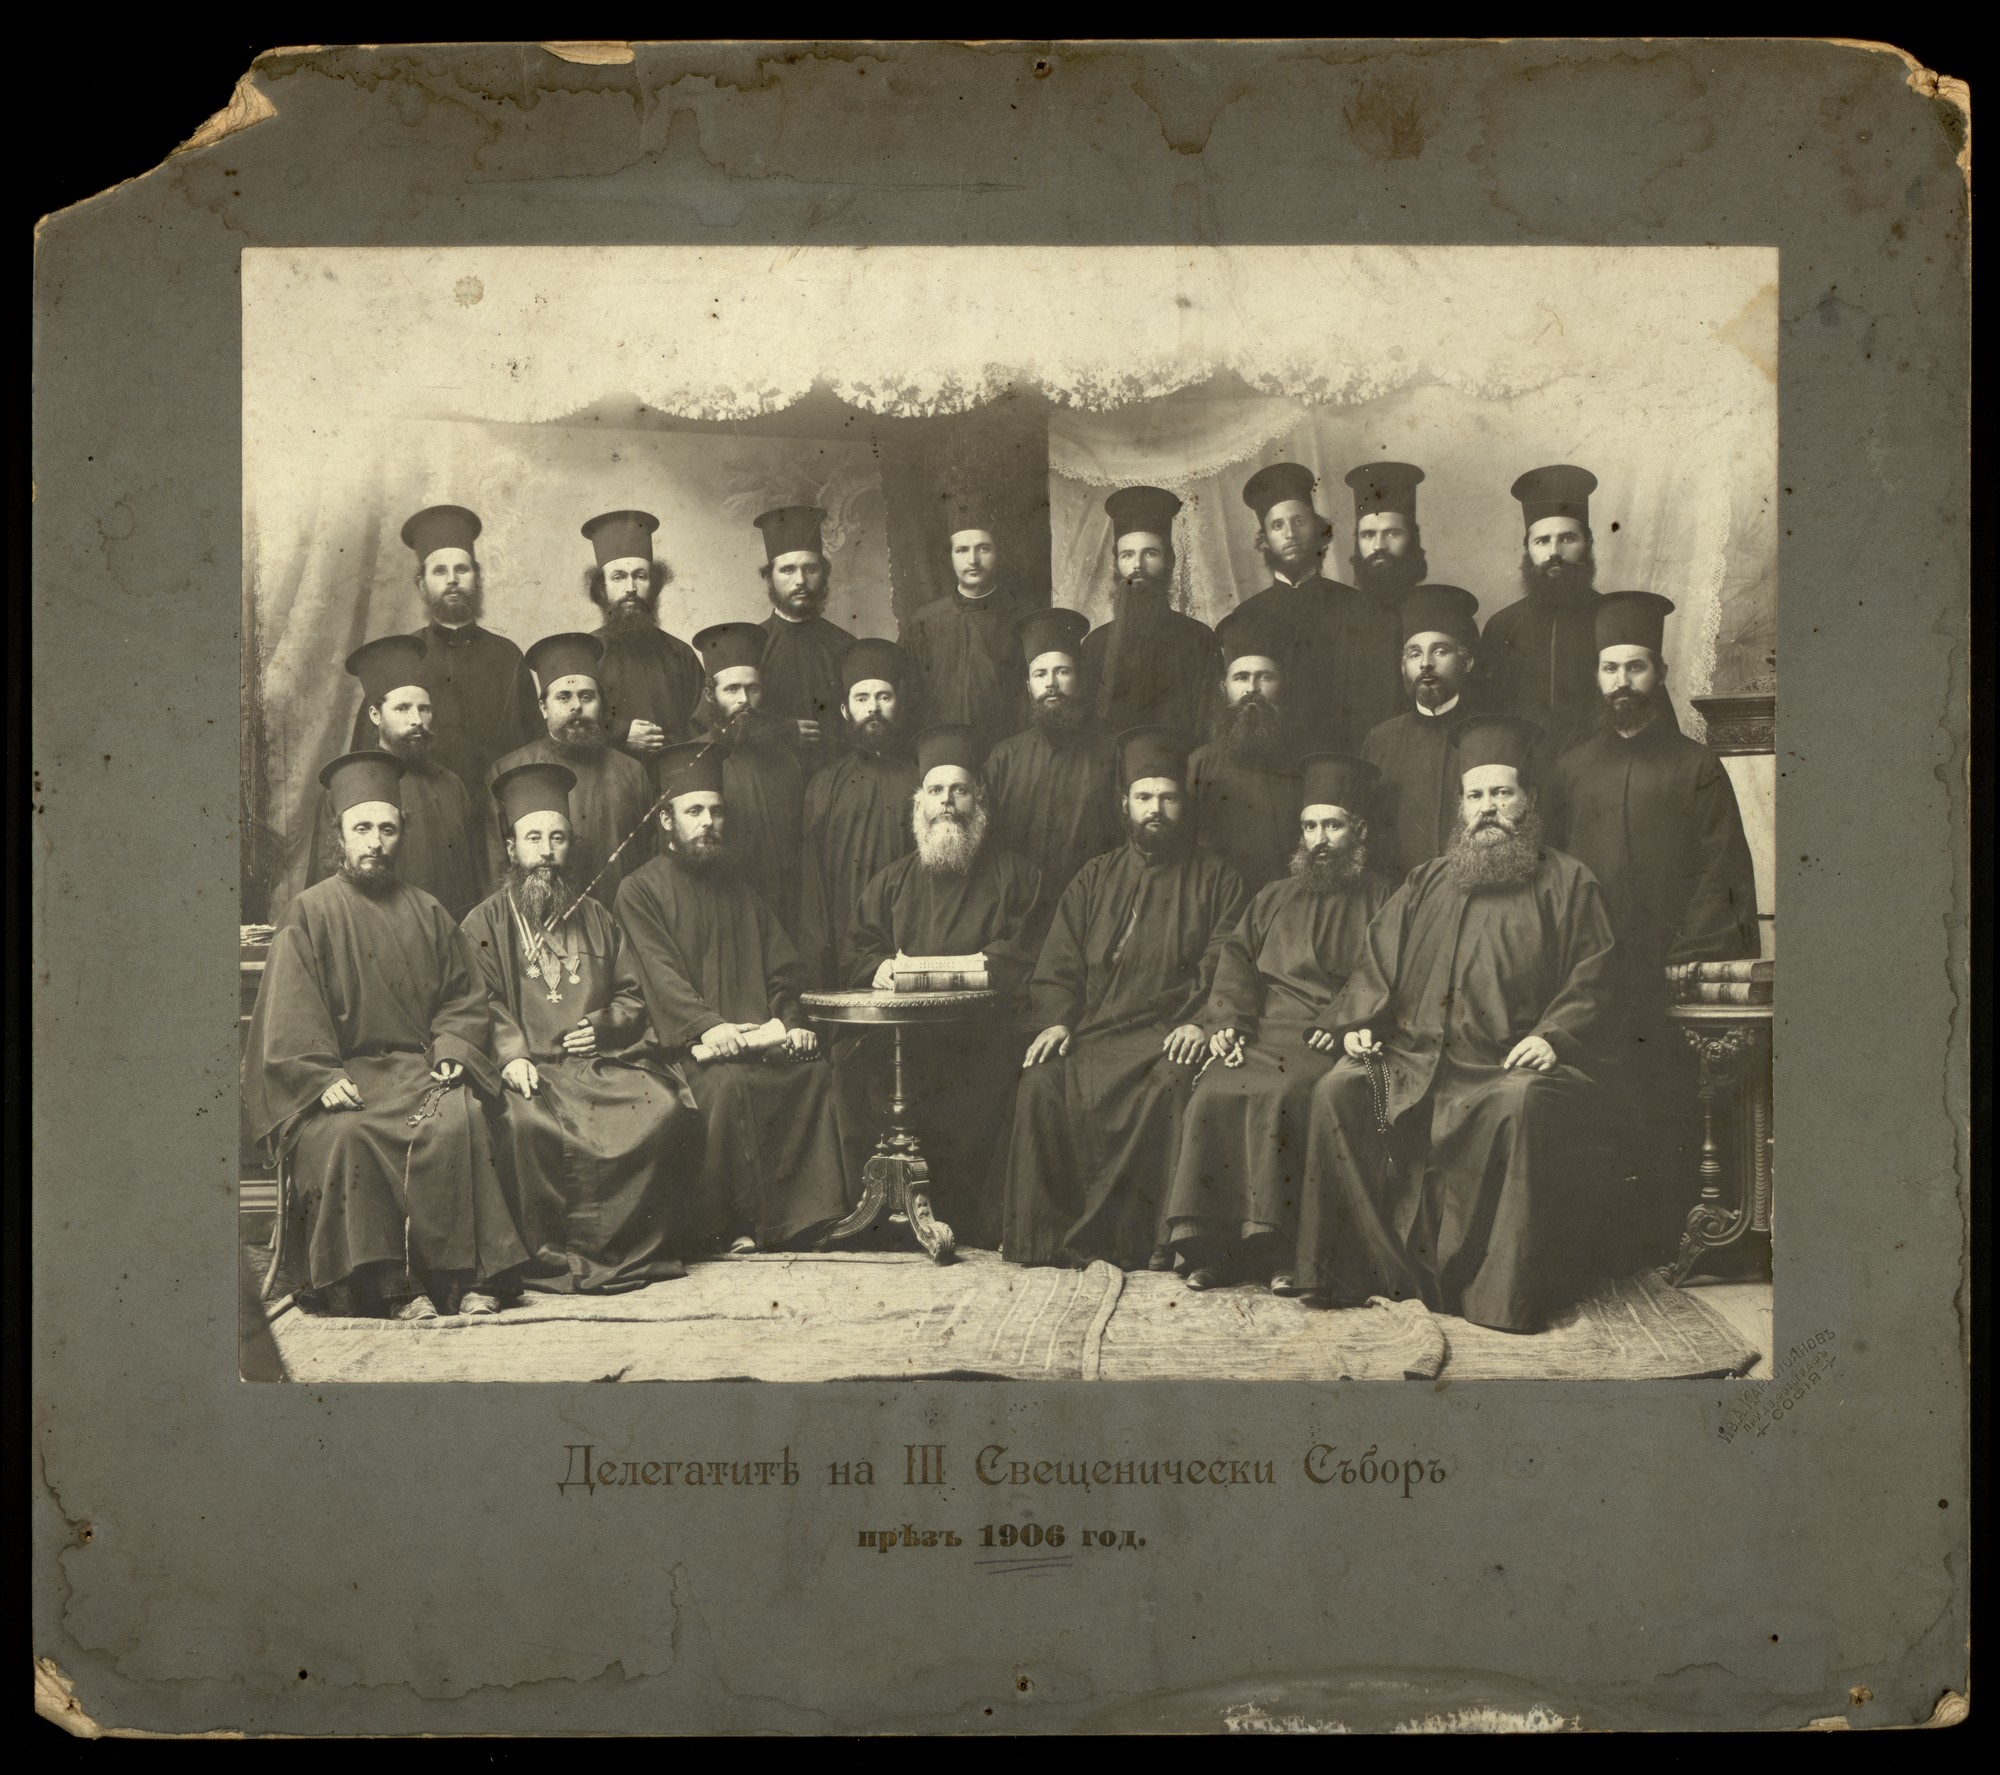 """Delegates of the III. Bulgarian Sacerdotal Convocation in 1906."", © St. Cyril and St. Methodius National Library"